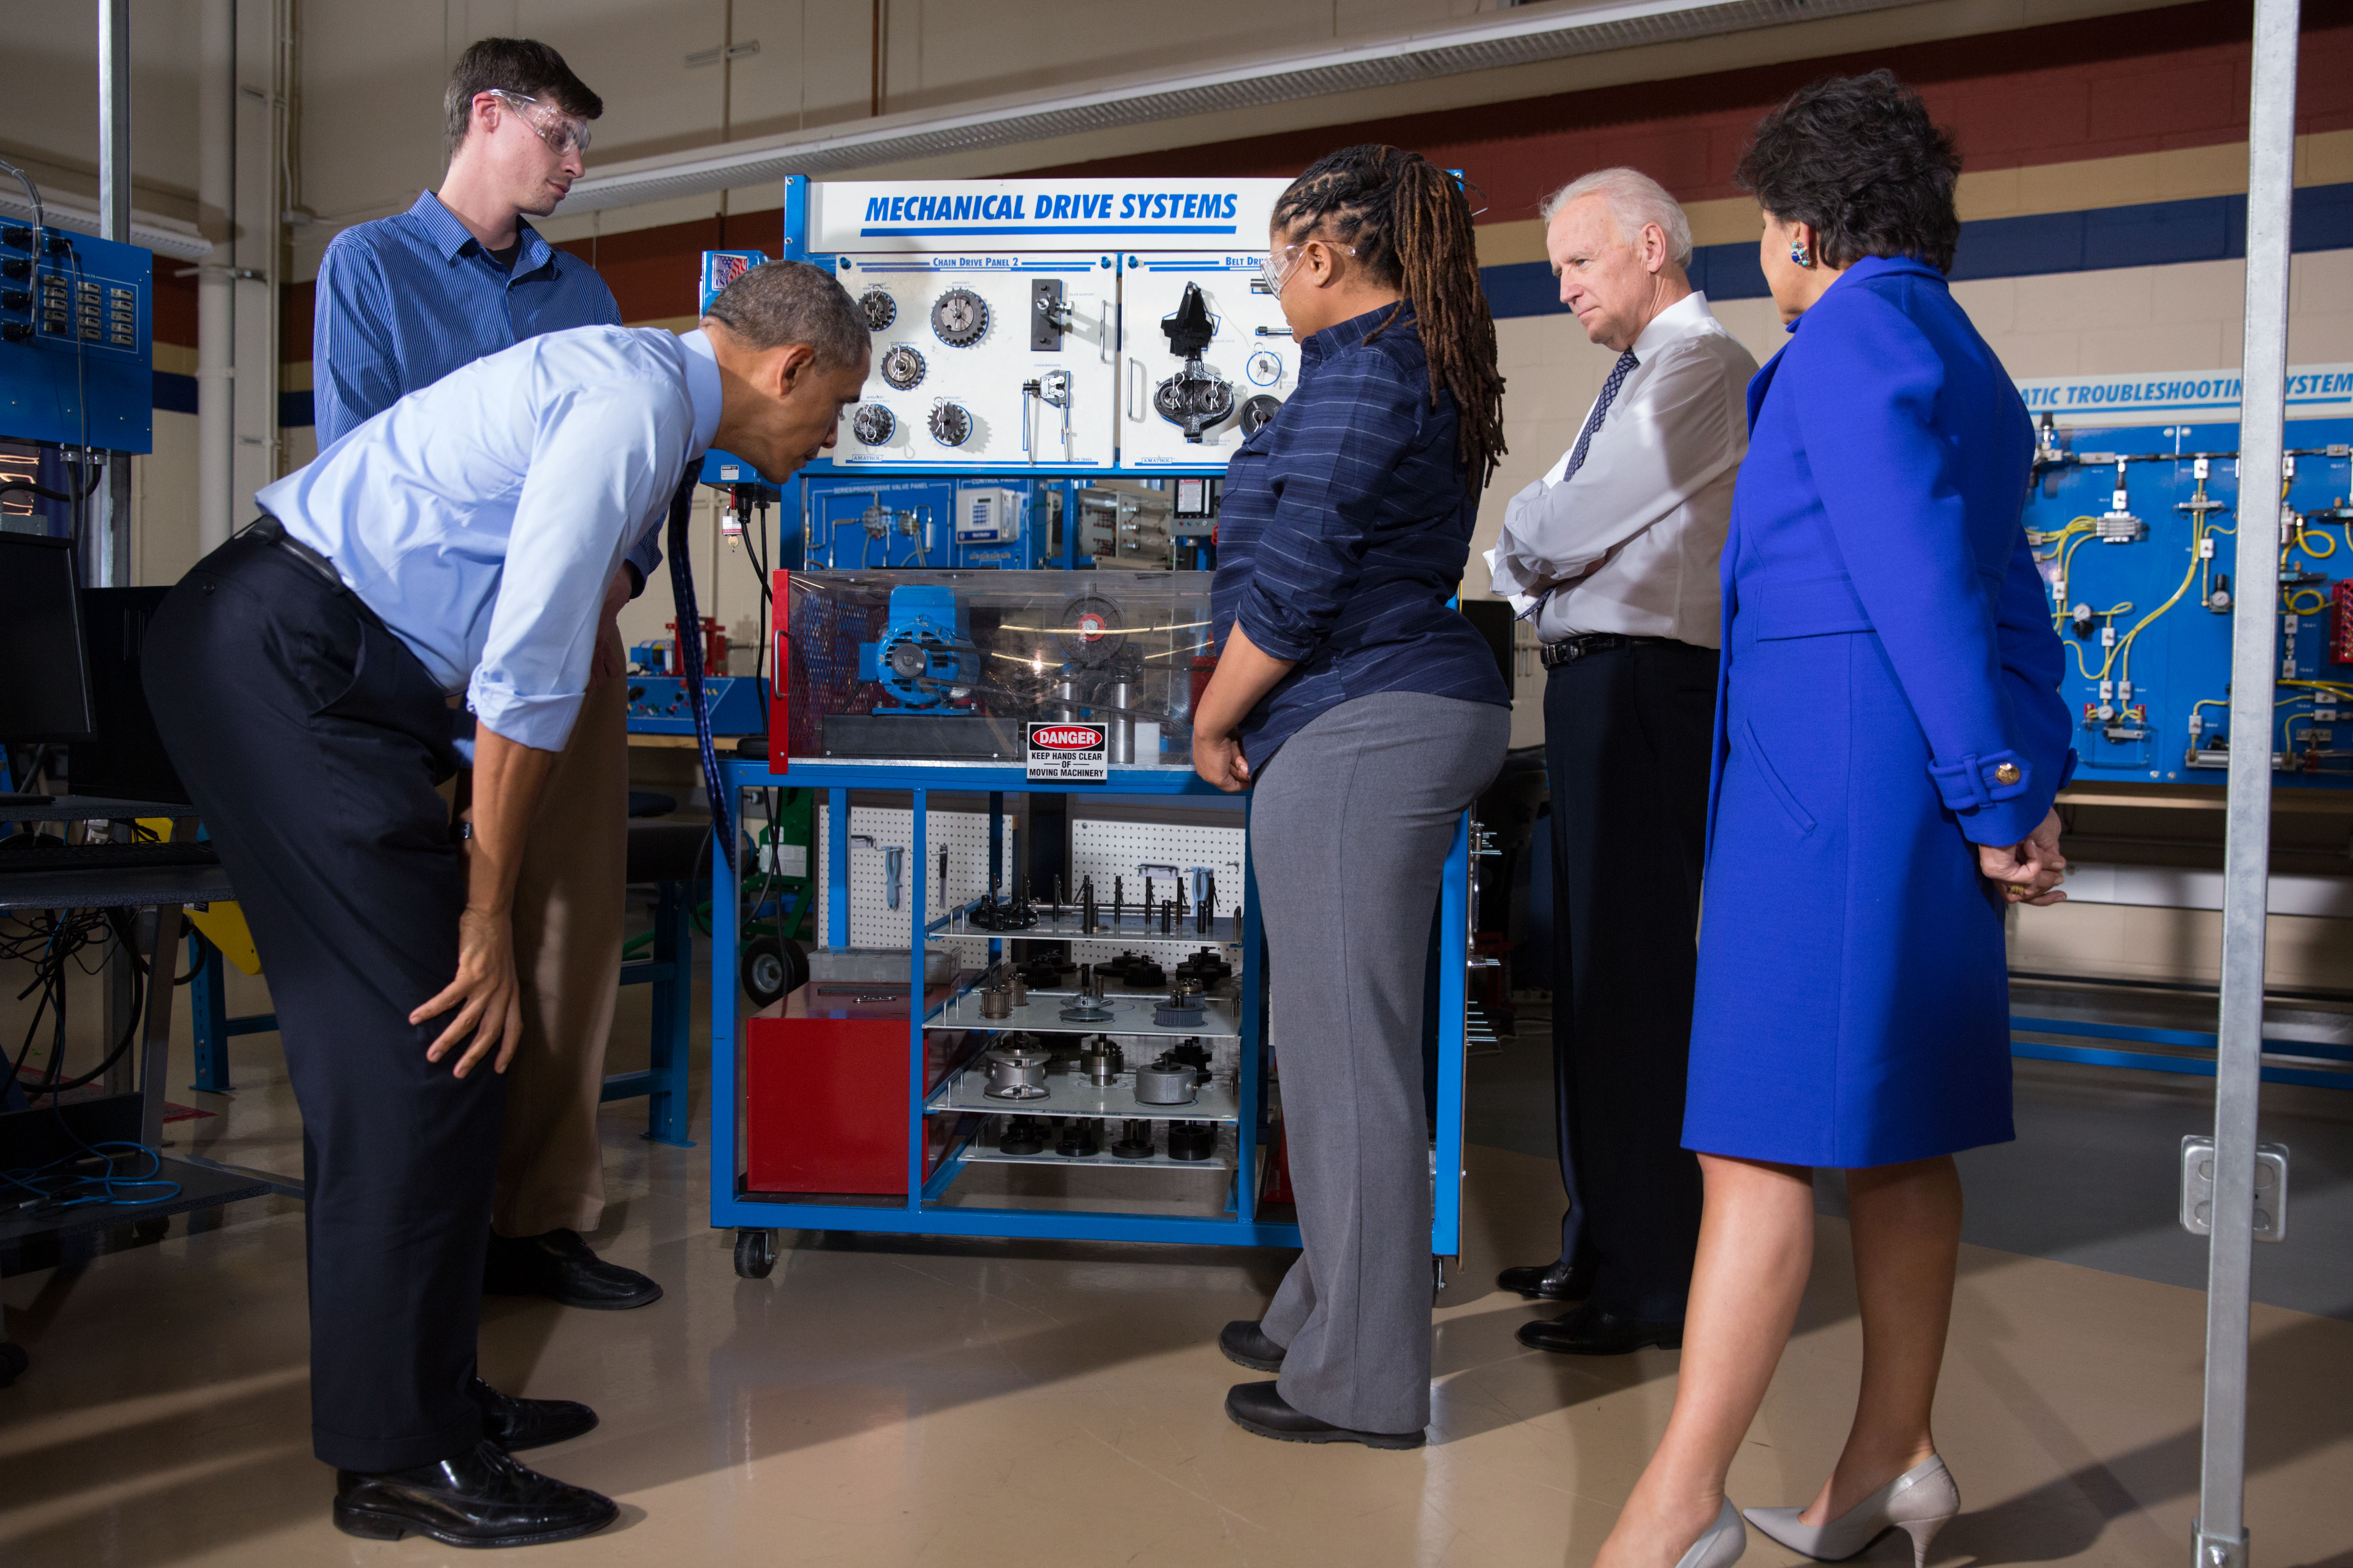 President Barack Obama, Vice President Joe Biden, and Commerce Secretary Penny Pritzker tour a classroom at the Community College of Allegheny County West Hills Center in Oakdale, Pa.